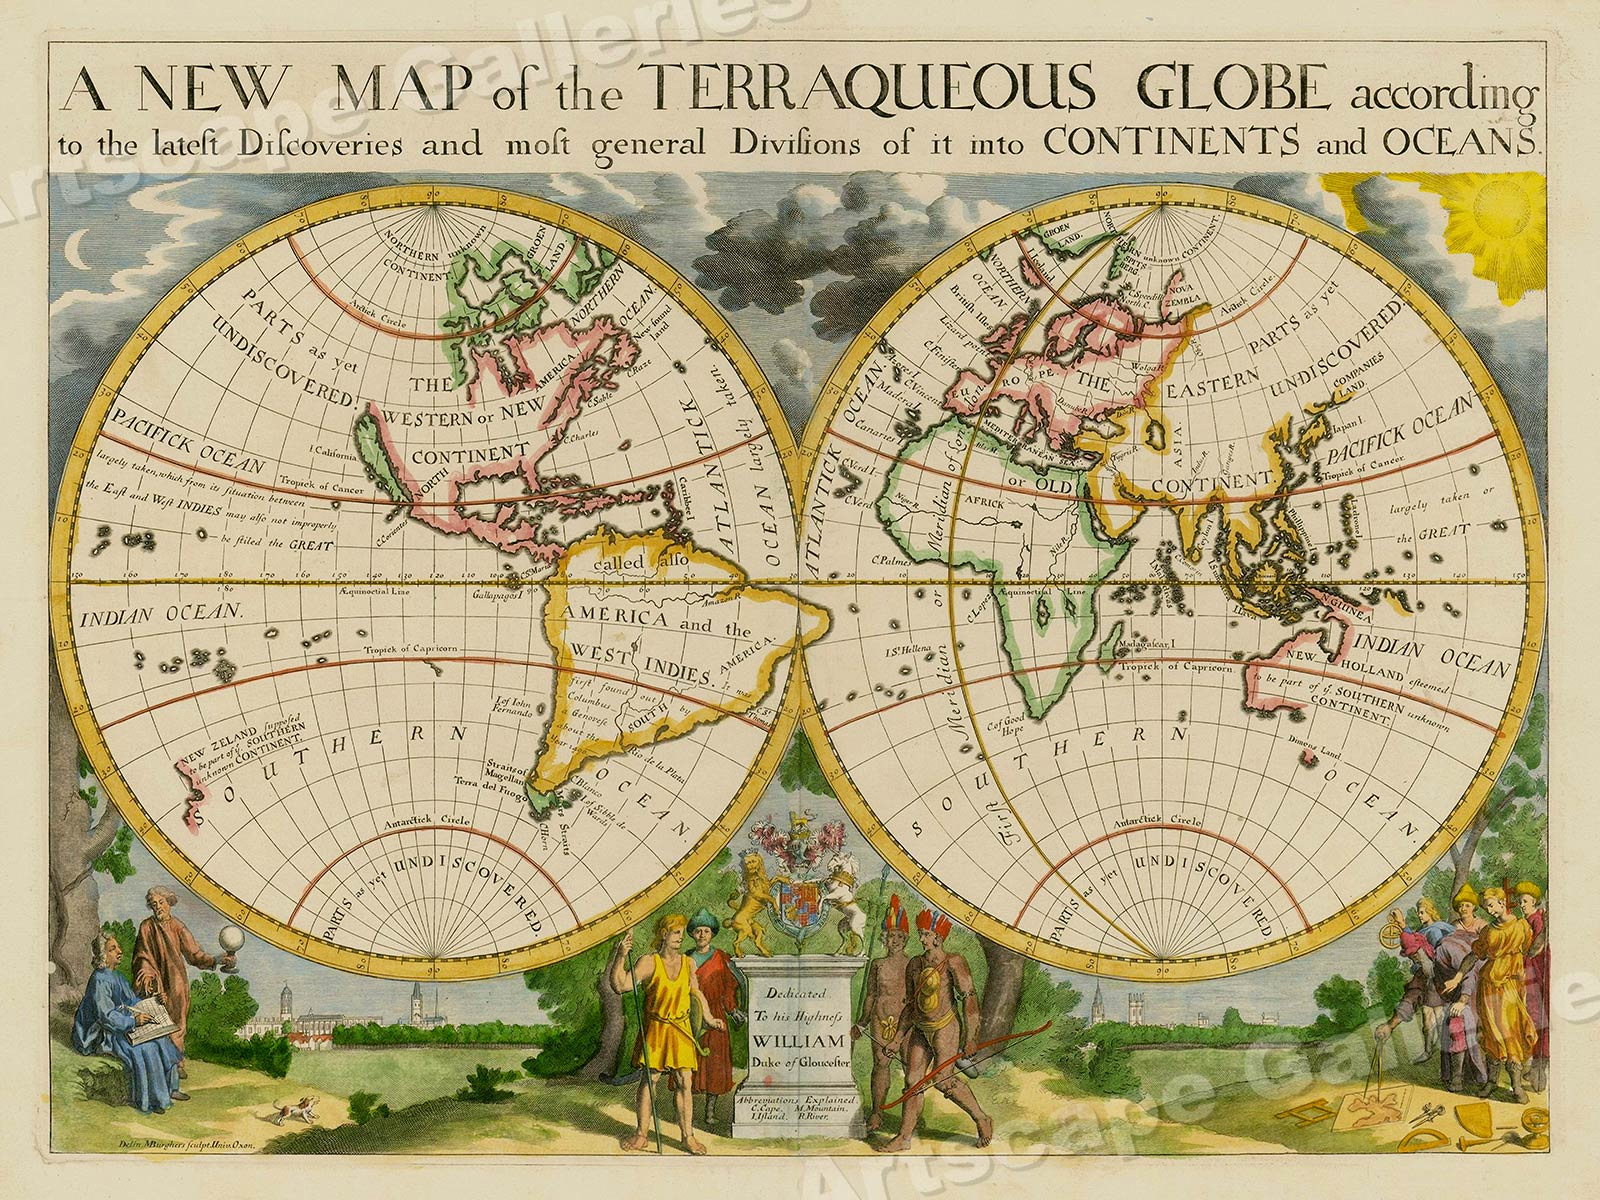 1700s    Terraqueous Globe    Vintage Style World Map   24x32   eBay Store Categories